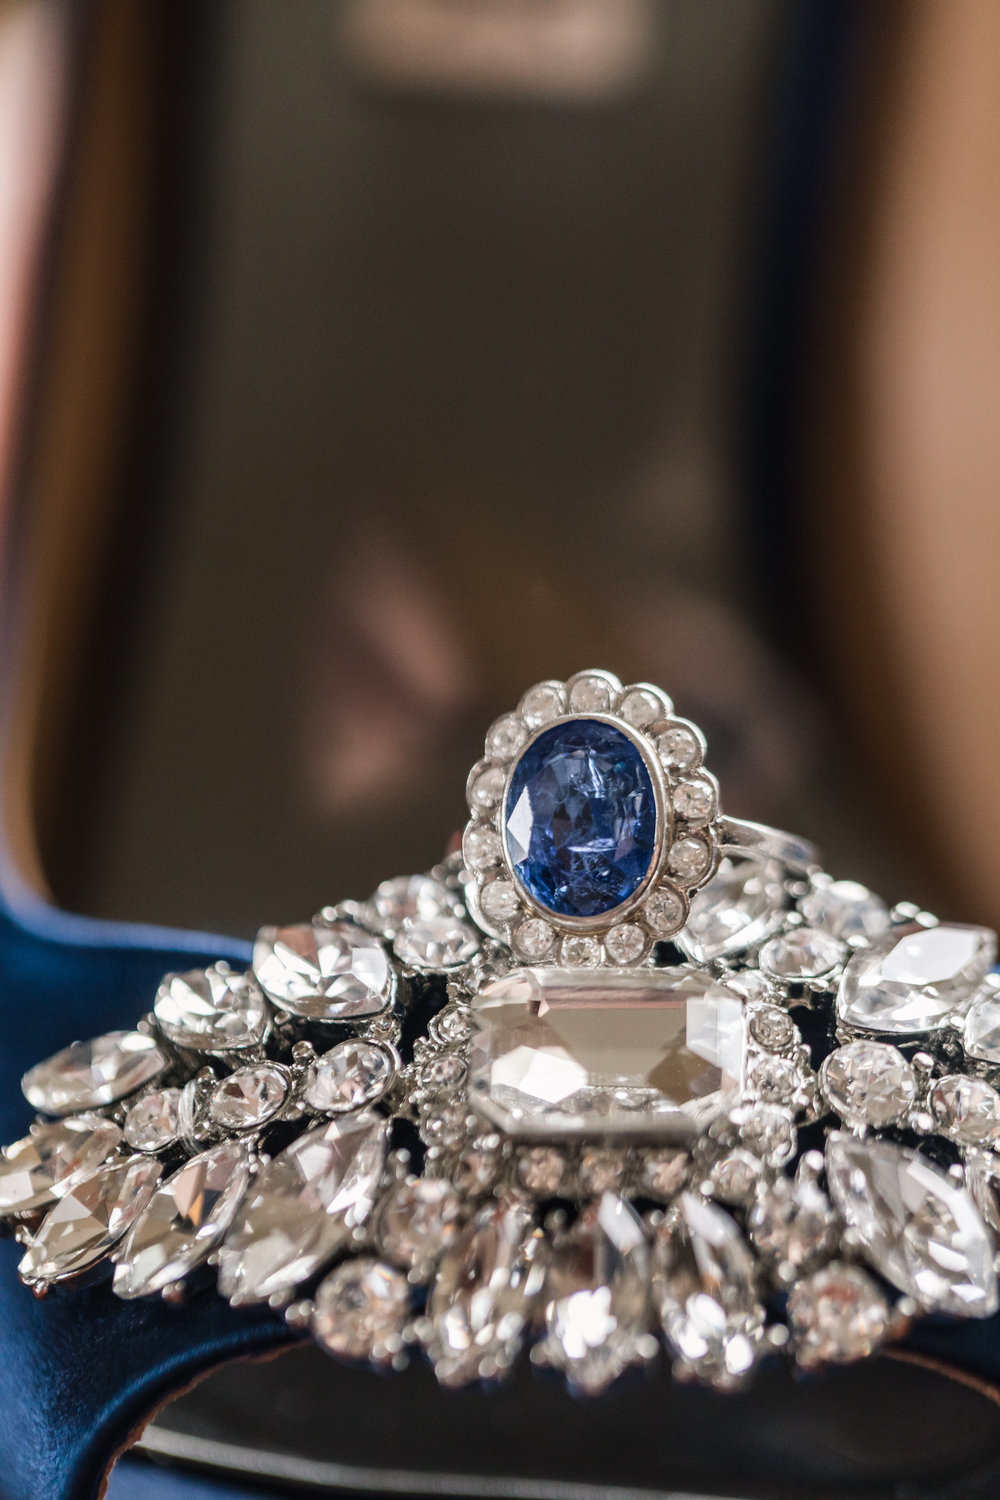 Blue Halo Engagement Ring - A Classic George Washington Hotel Wedding - Photography by Marirosa